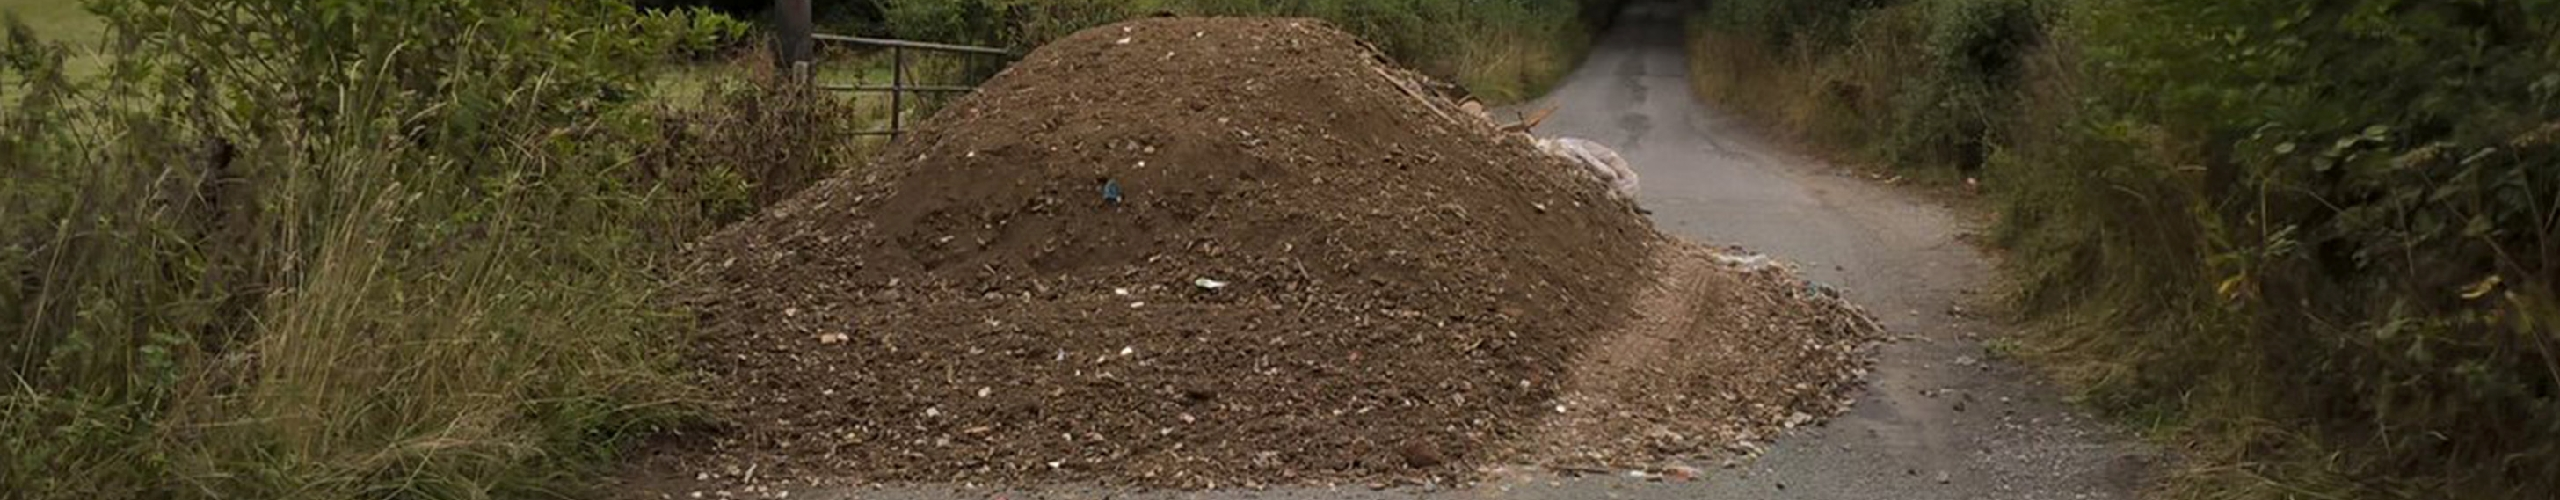 Fly tipped soil